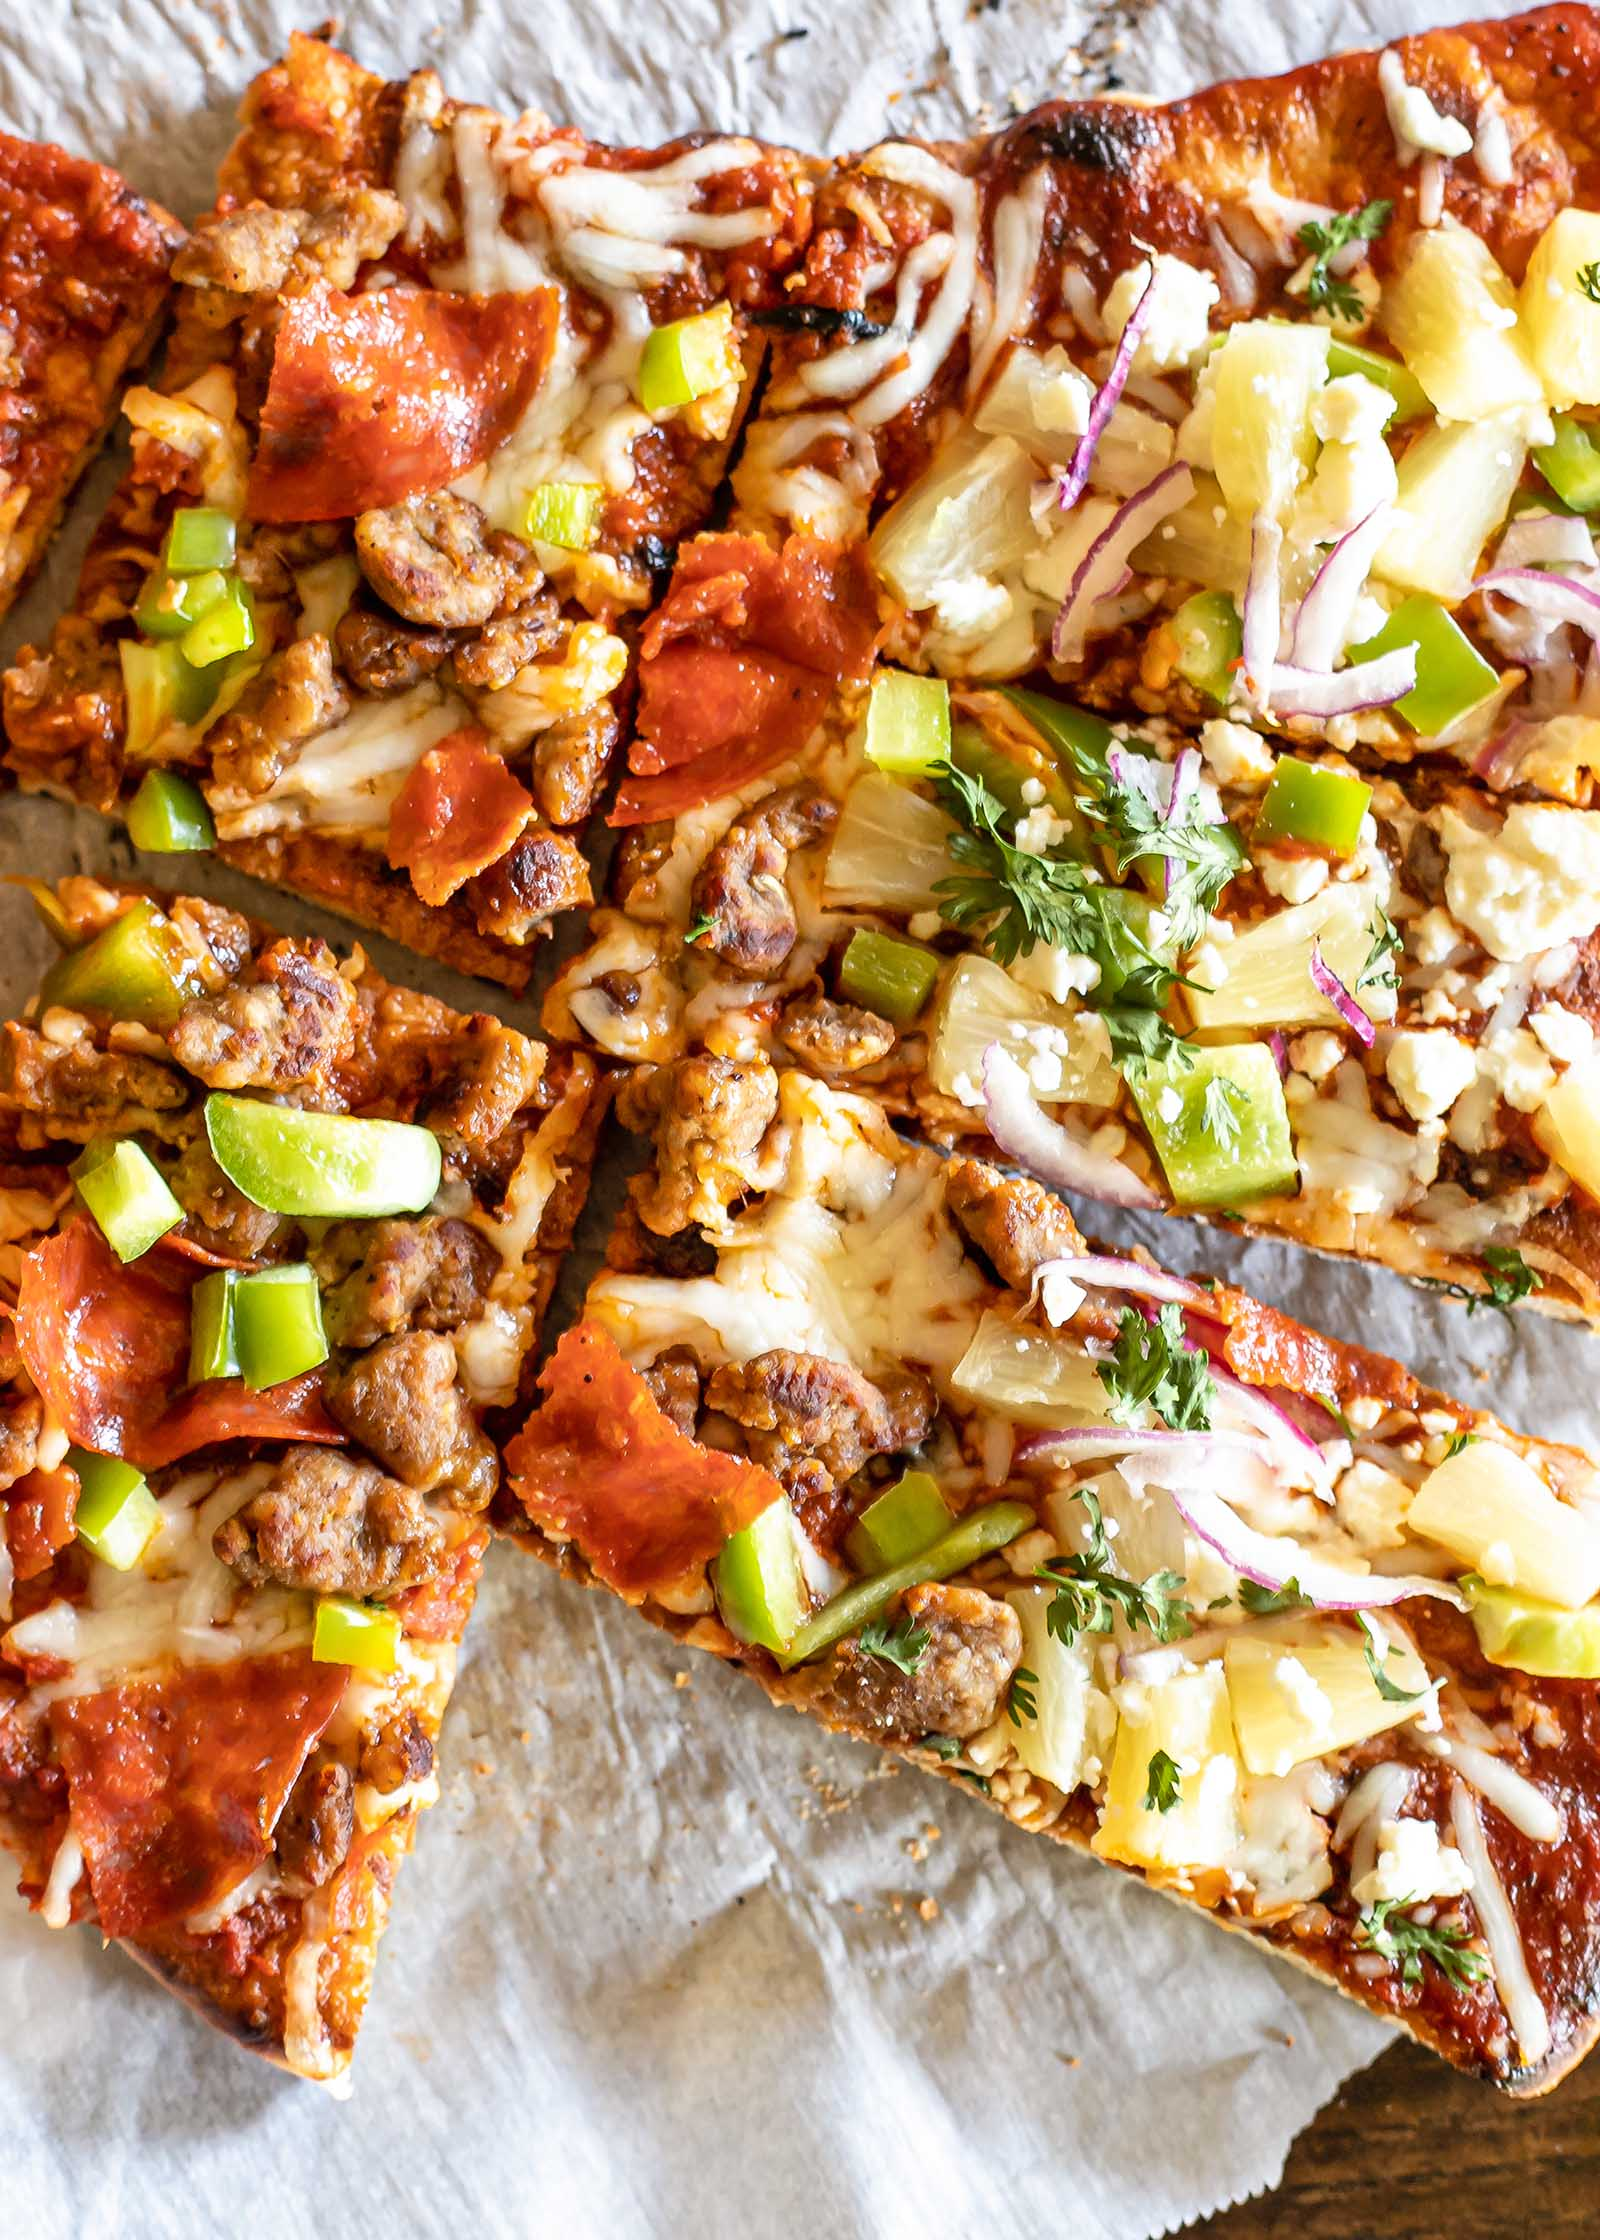 How to make pizza on the grill. Pizza sliced in rectangles and loaded with toppings.